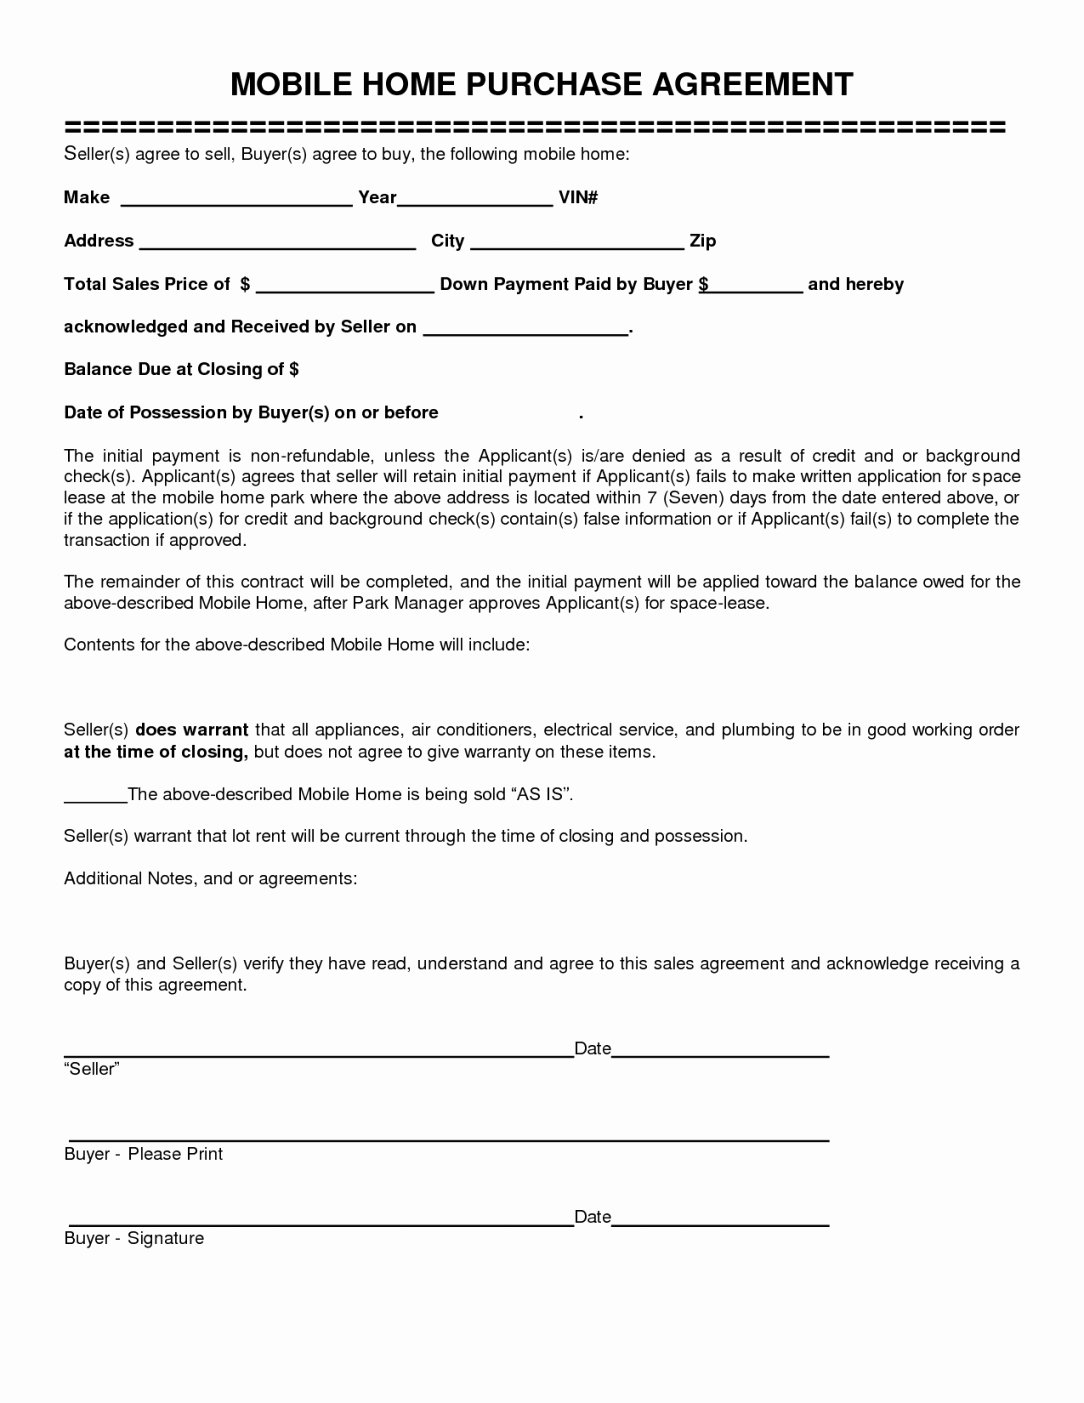 House Buying Contract Template Inspirational Mobile Home Purchase Agreement